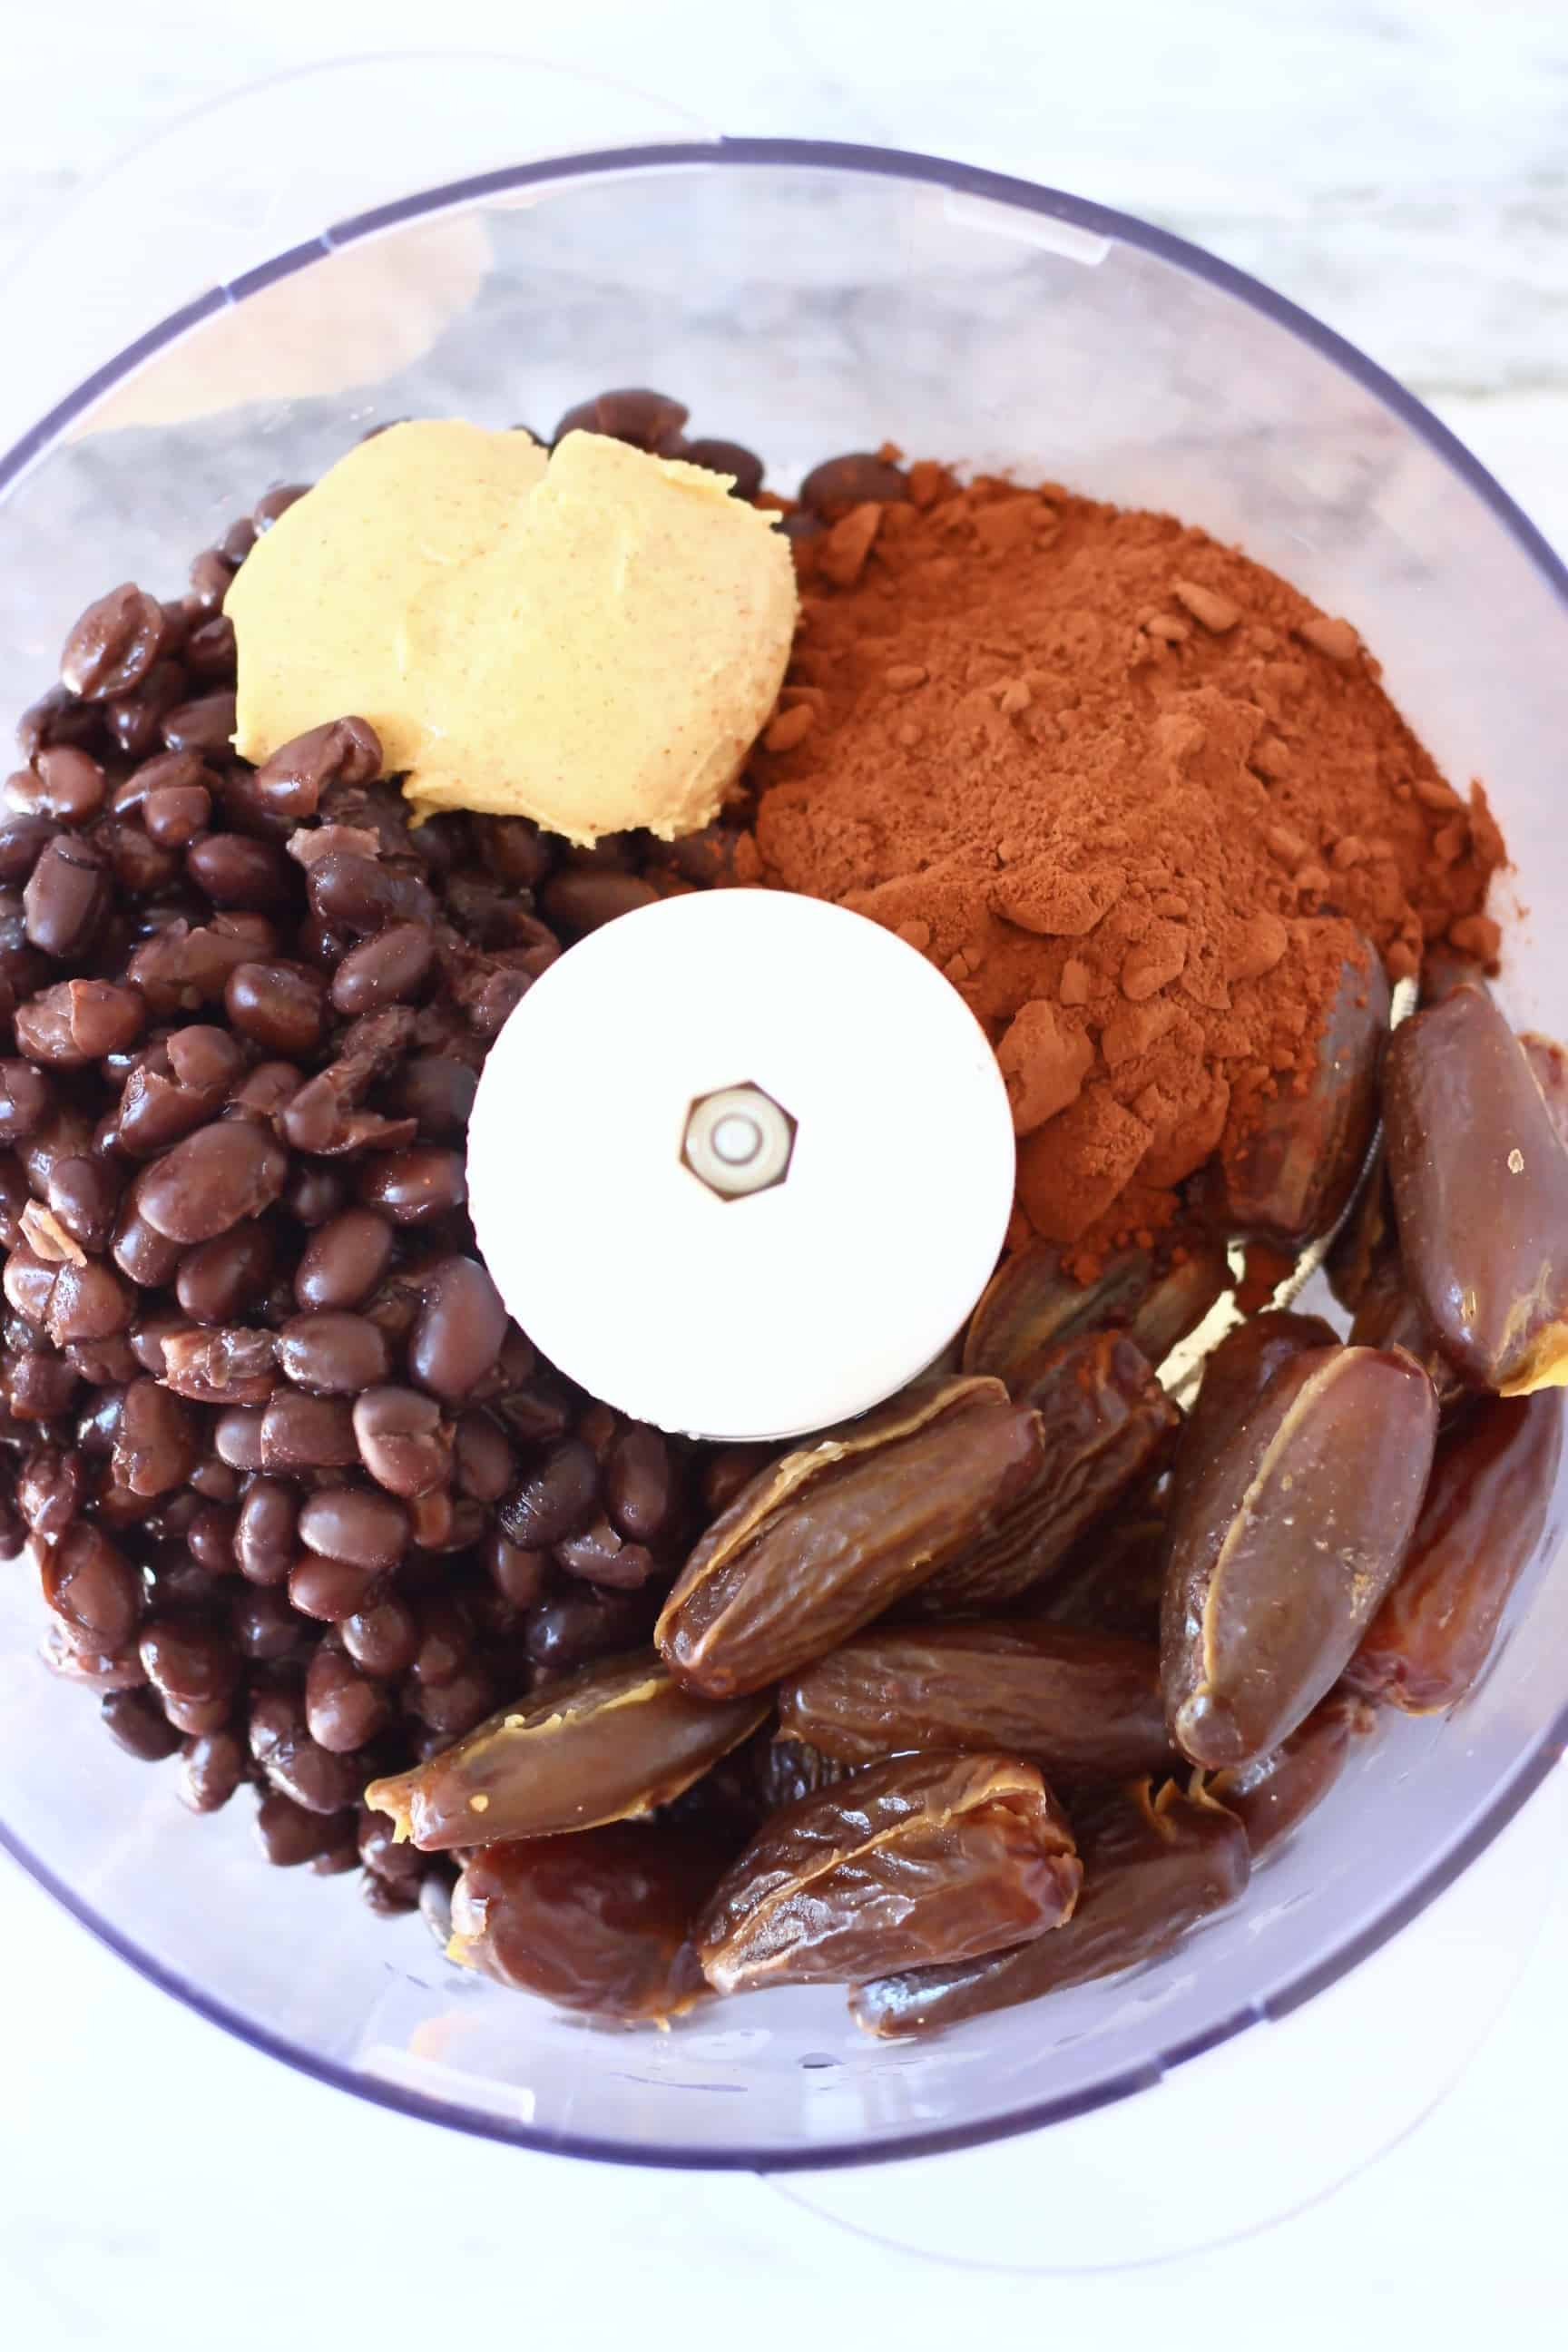 Back beans, cocoa powder, dates and almond butter in a food processor